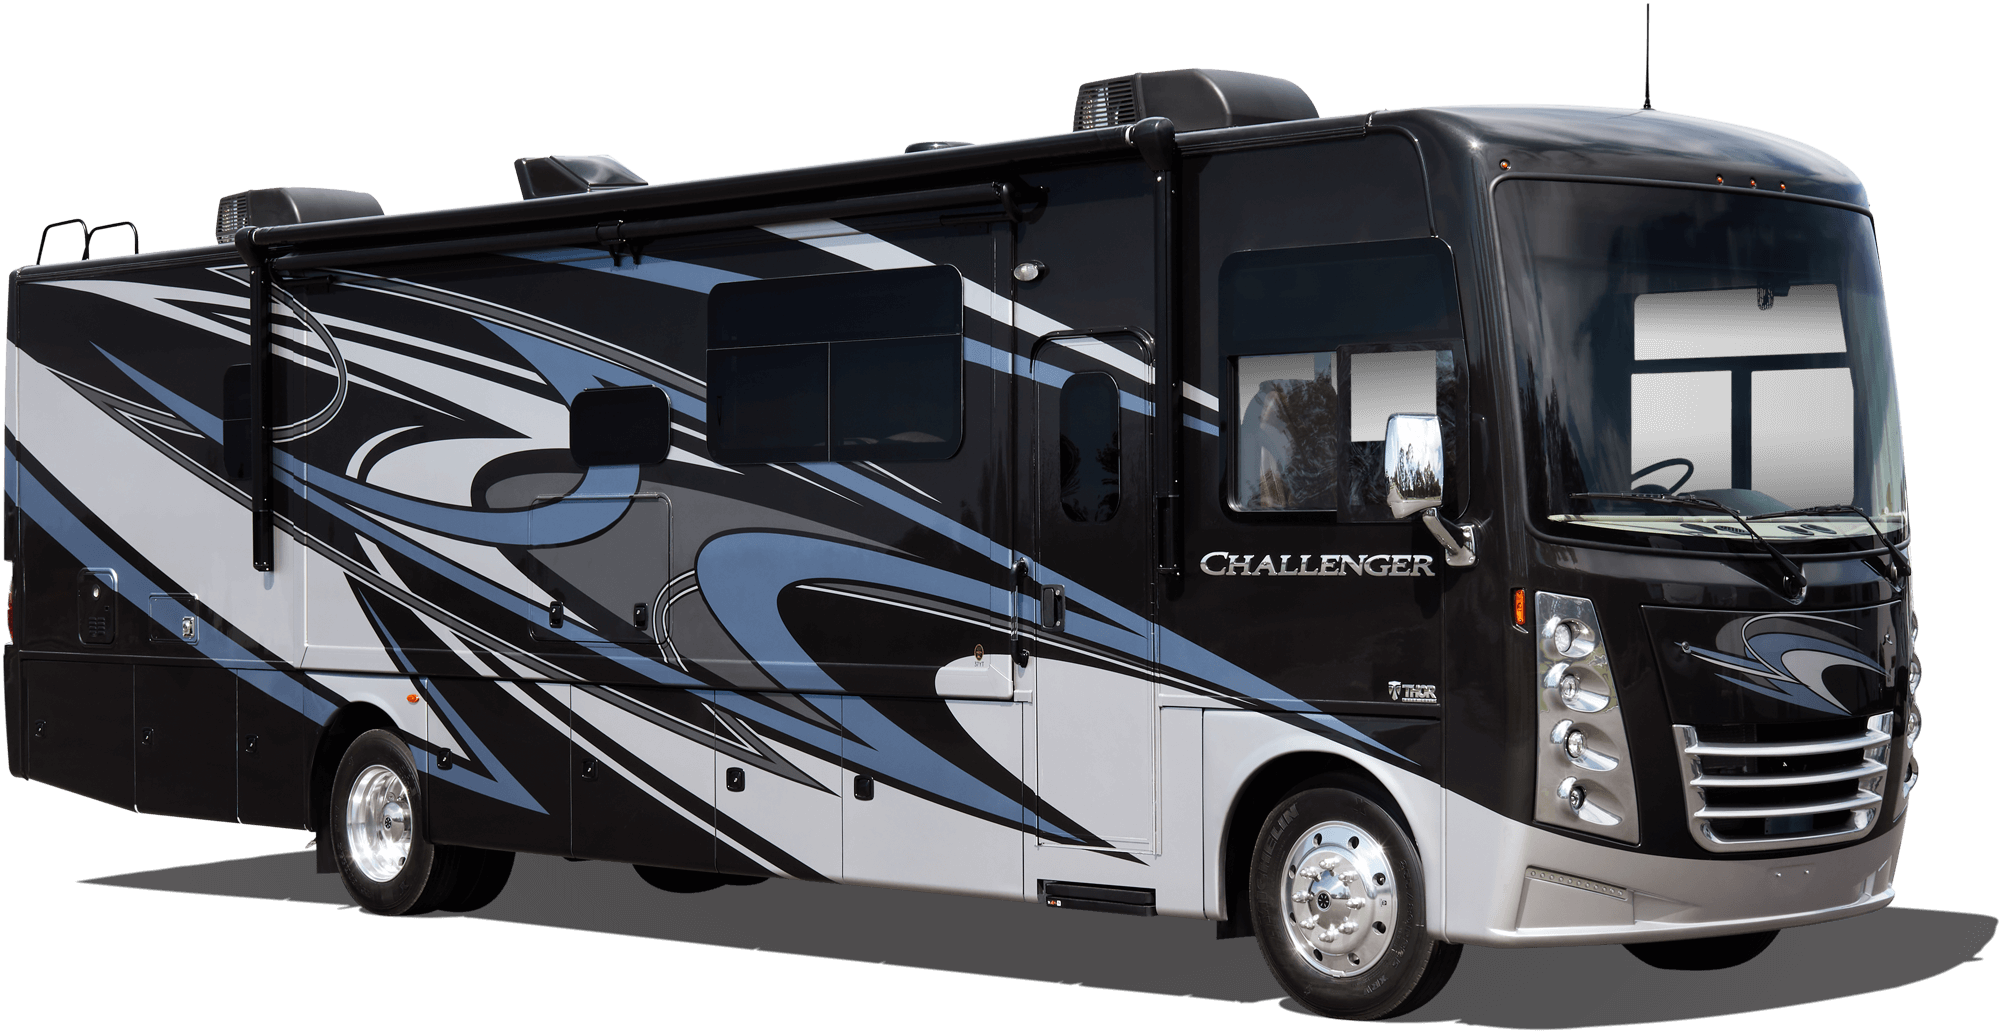 Chateau Class C RV Denim Blue Exterior HD Max